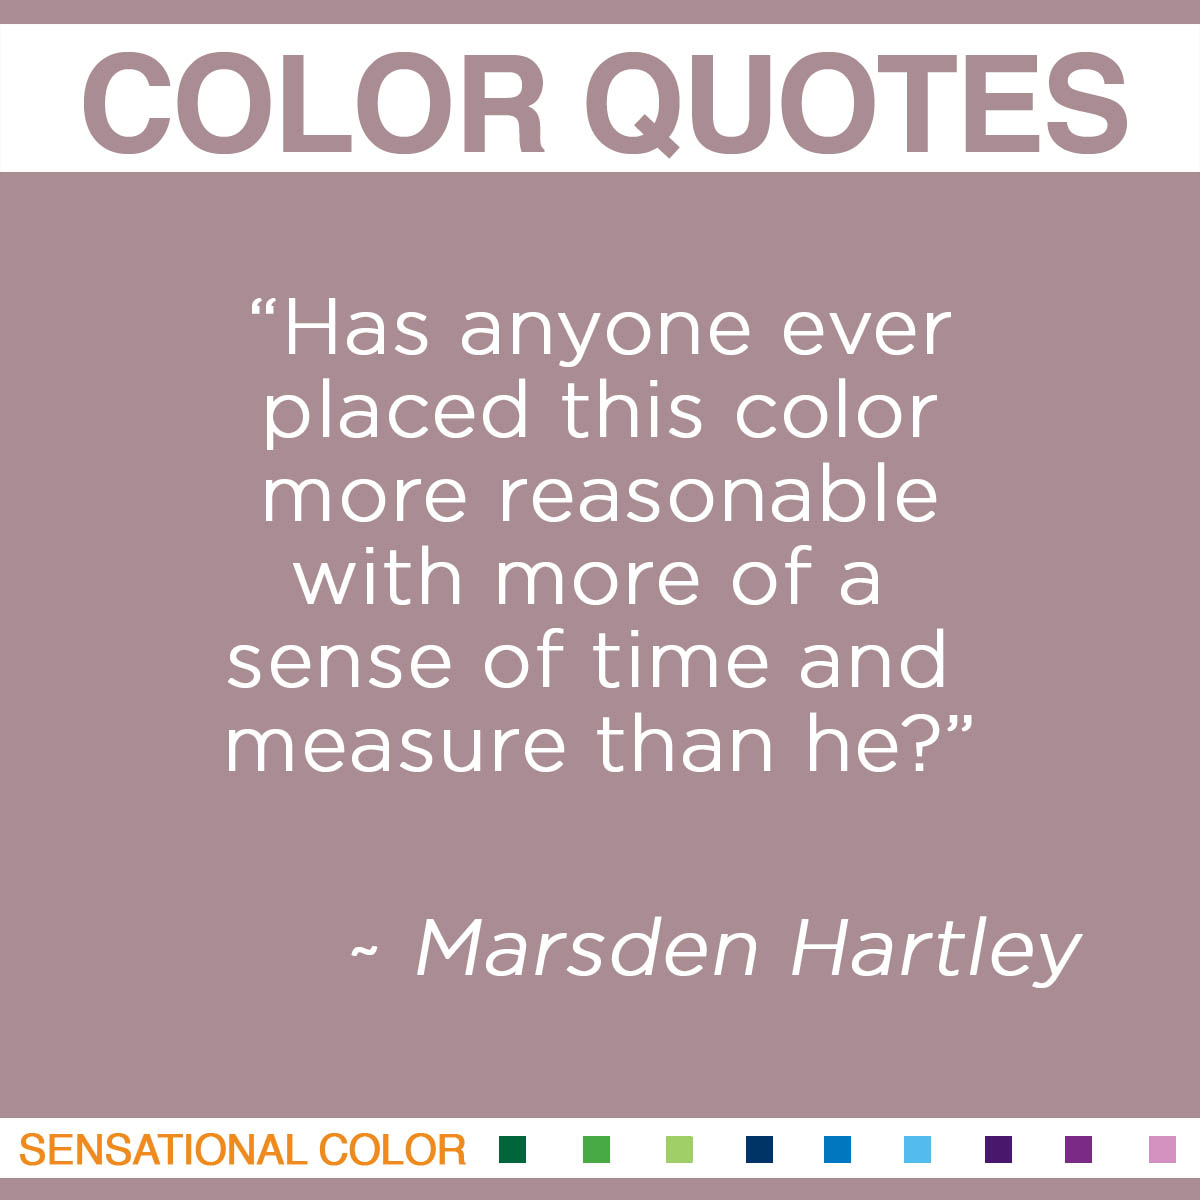 """Has anyone ever placed this color more reasonable with more of a sense of time and measure than he?"" - Marsden Hartley"